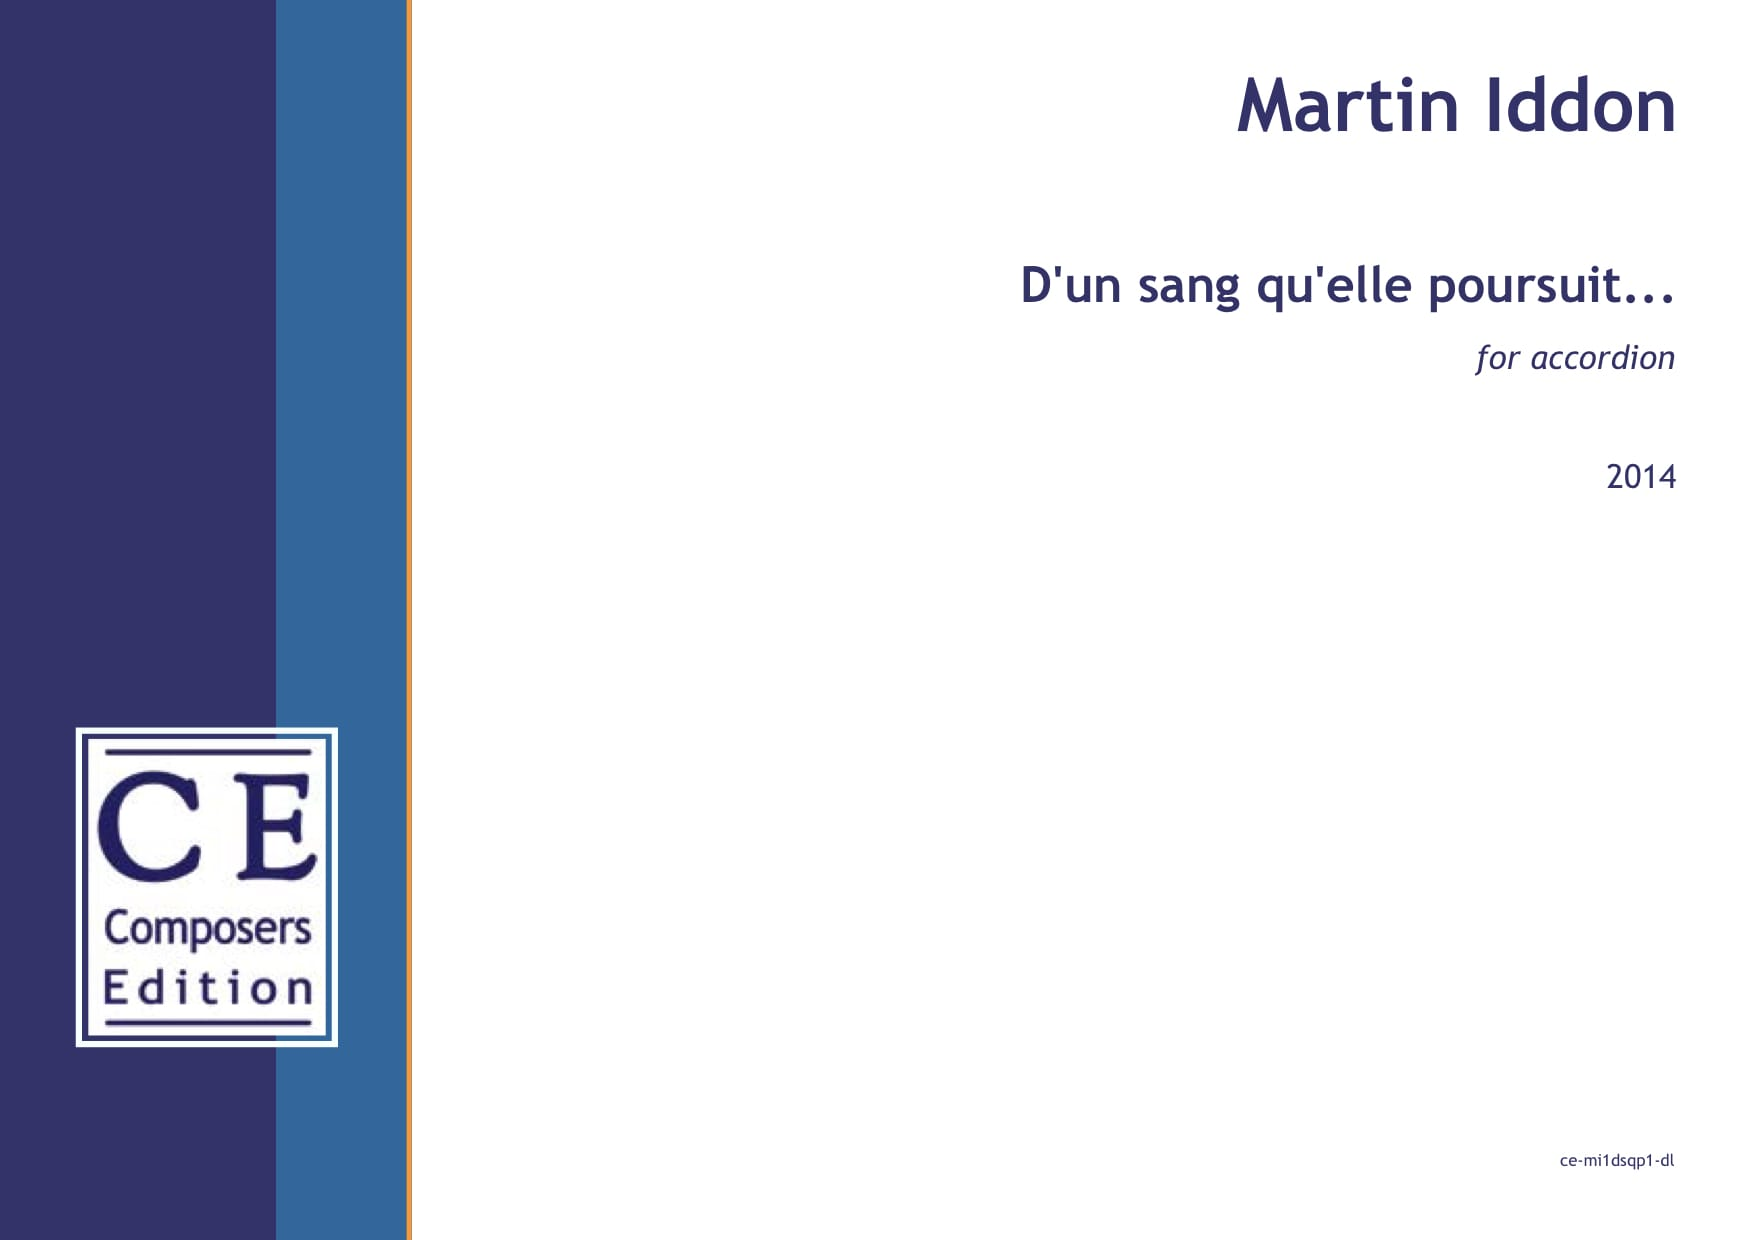 Martin Iddon: D'un sang qu'elle poursuit... for accordion